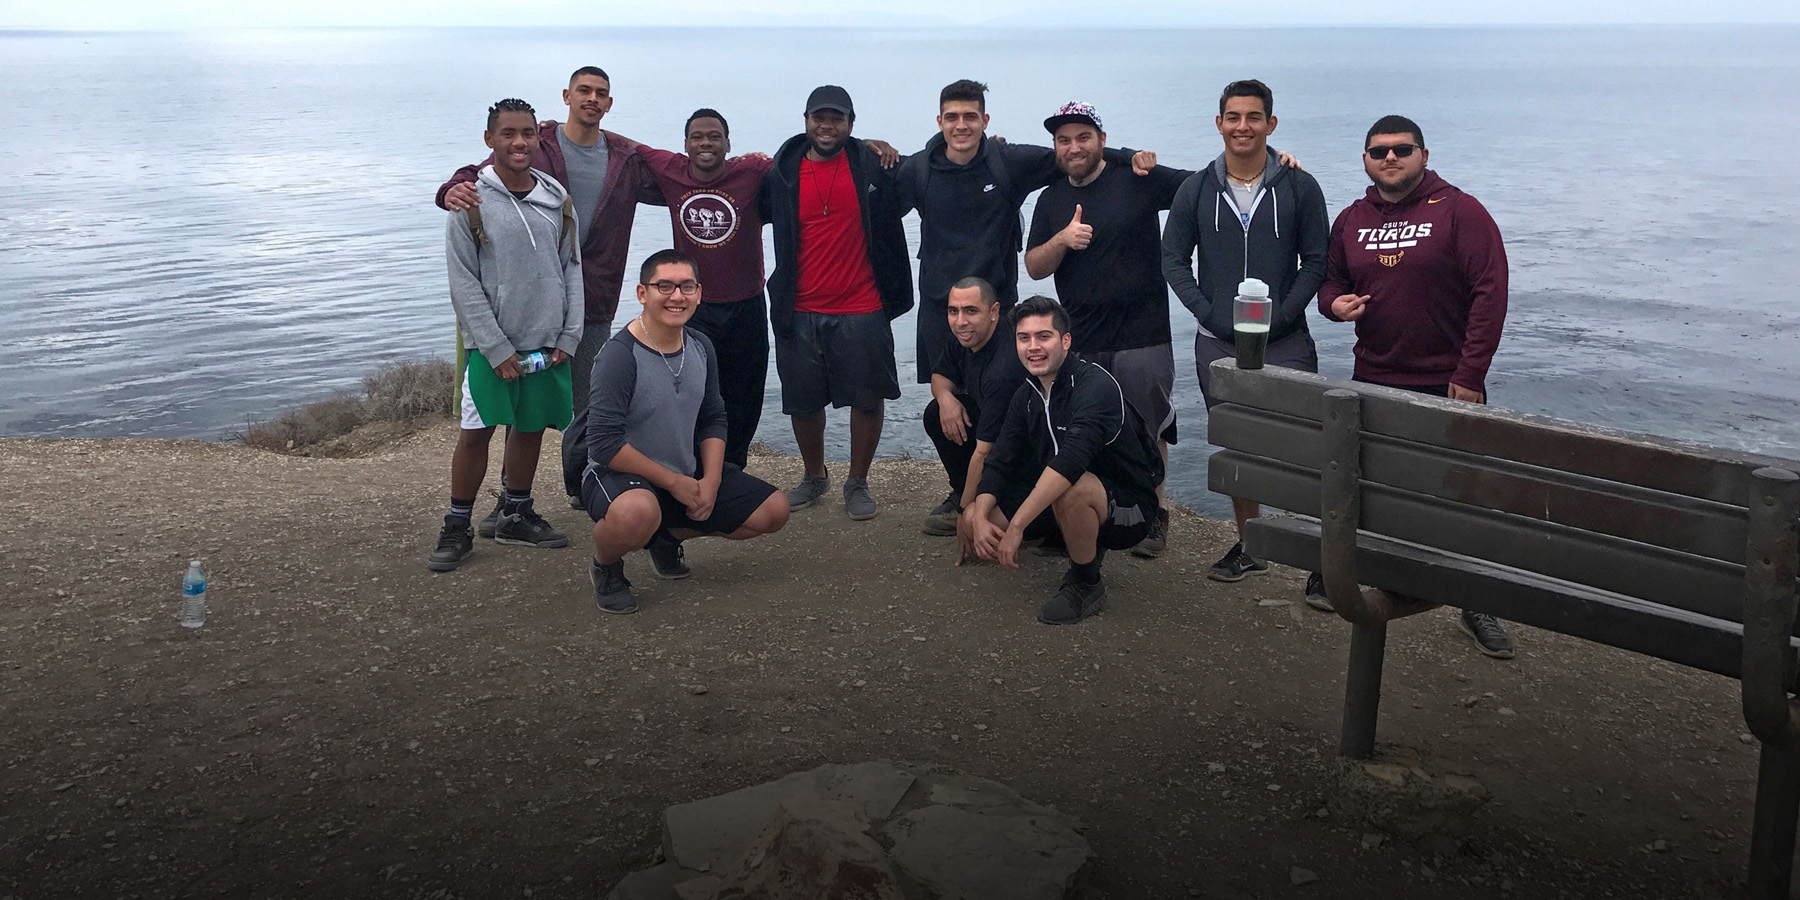 Anthony poses with a group of his MSA brothers on a hike in Palos Verdes.